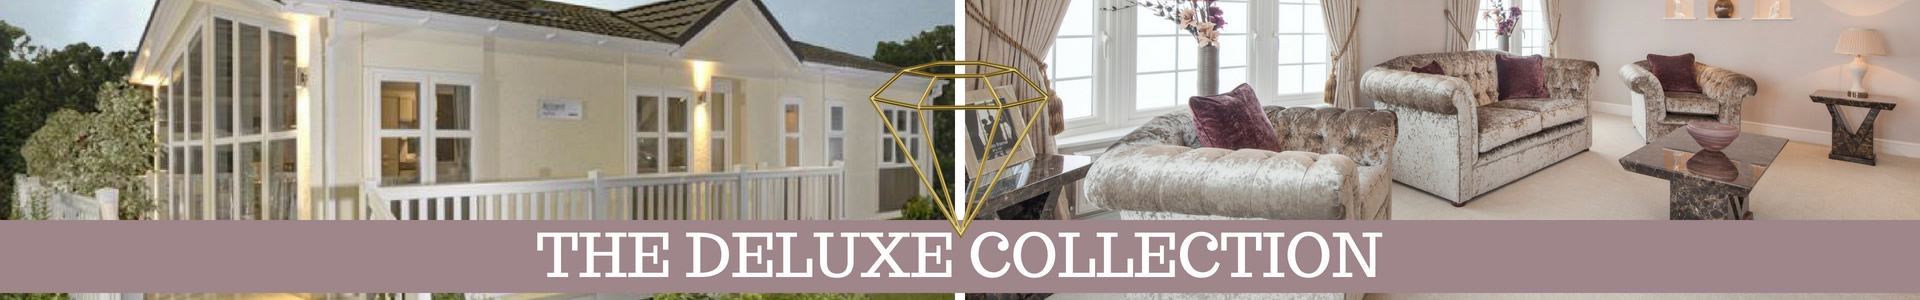 Deluxe Collection Homepage Banner